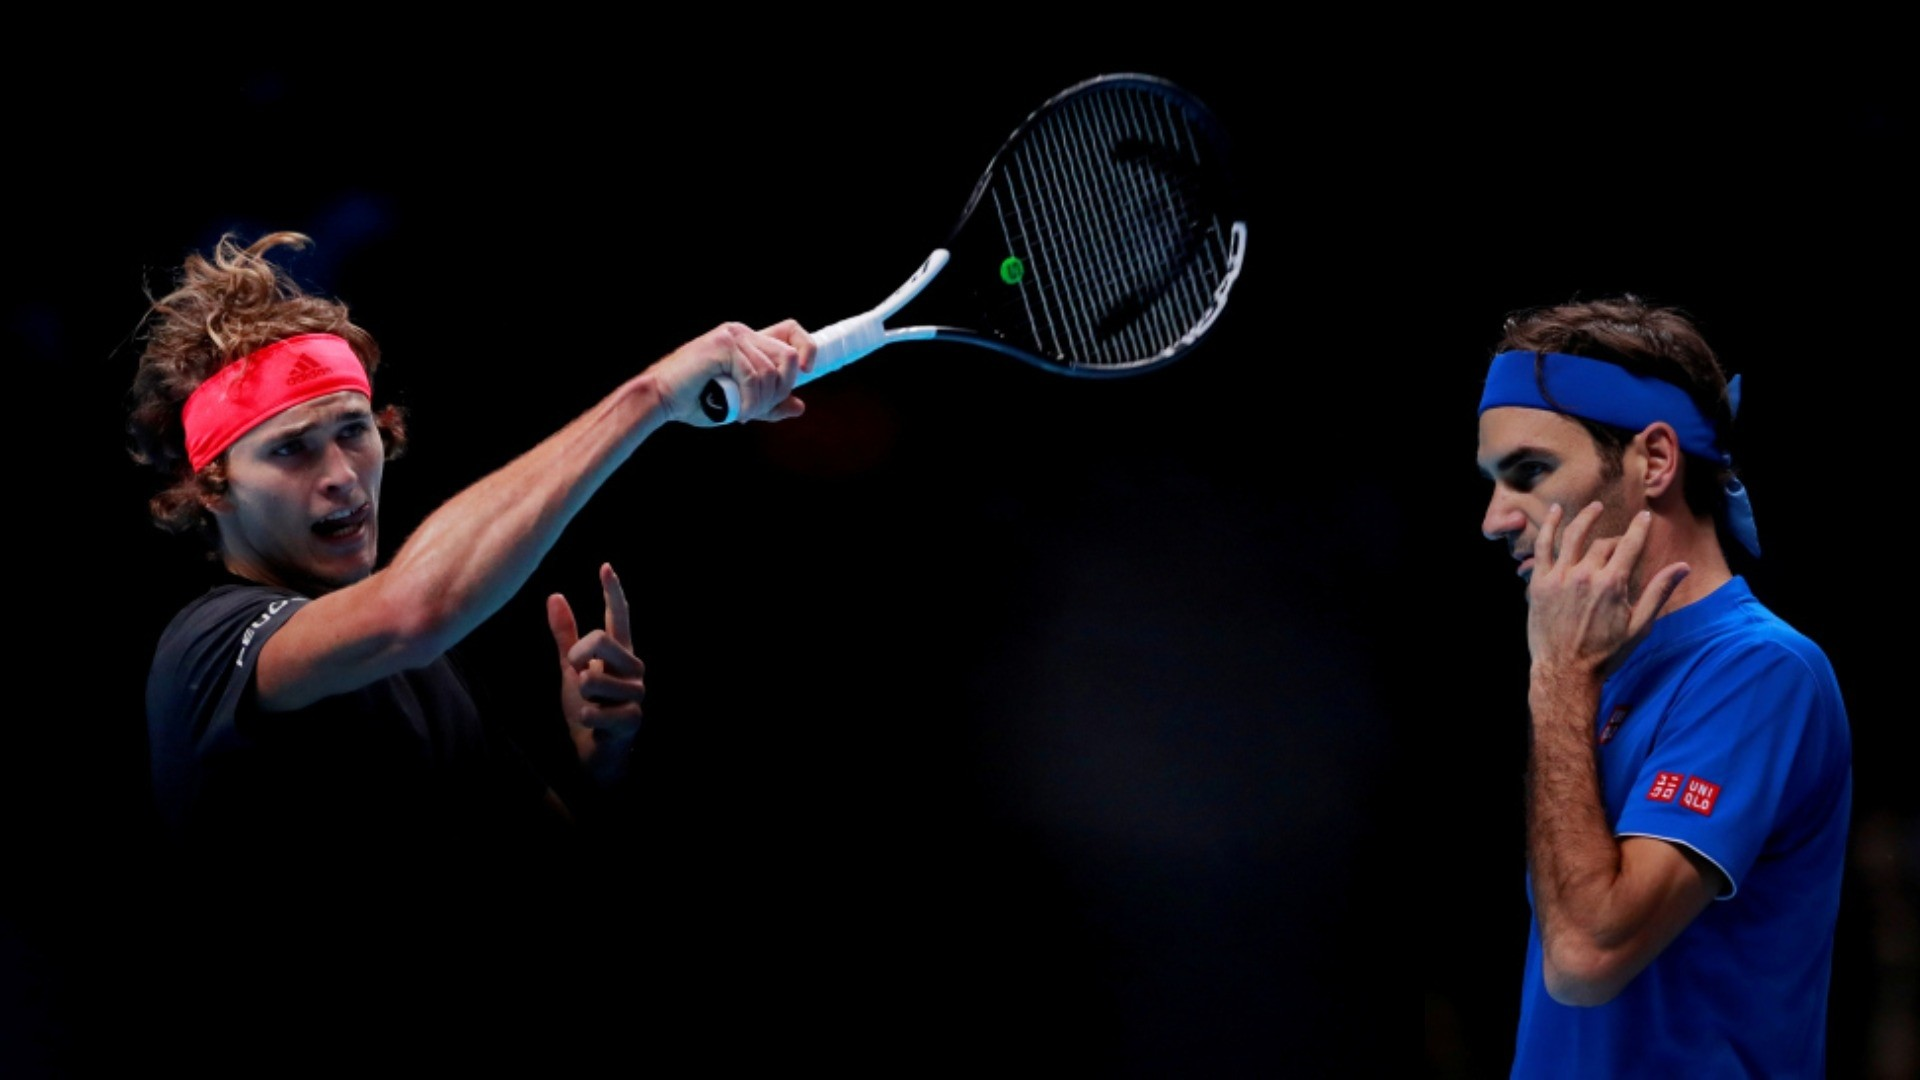 Combination image shows Alexander Zverev (L) in action during his semi final match against Roger Federer (R). (REUTERS Photos)